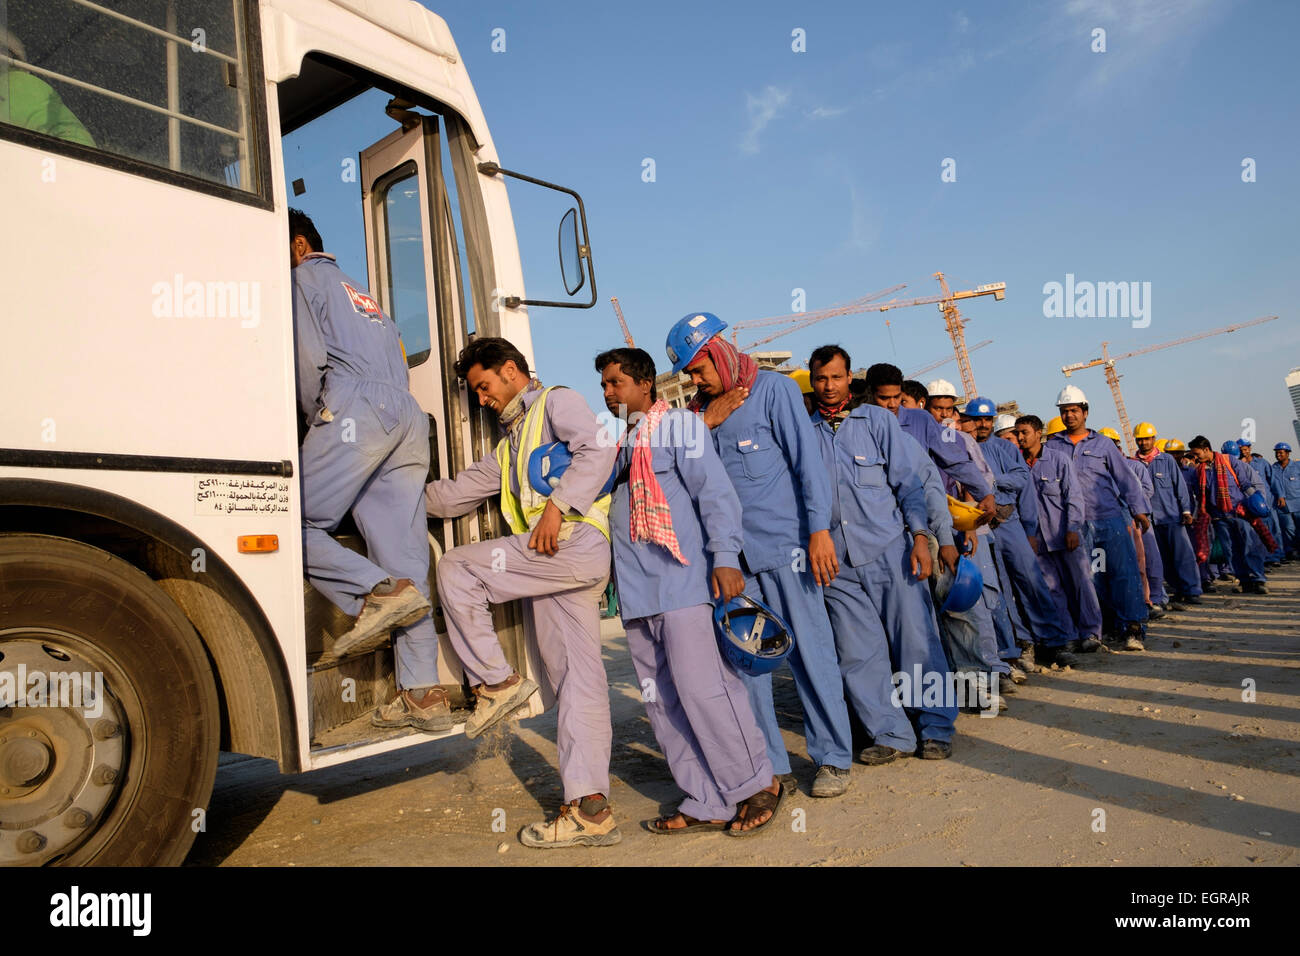 Construction workers queuing to get on bus to living quarters at end of working day in Dubai United Arab Emirates - Stock Image